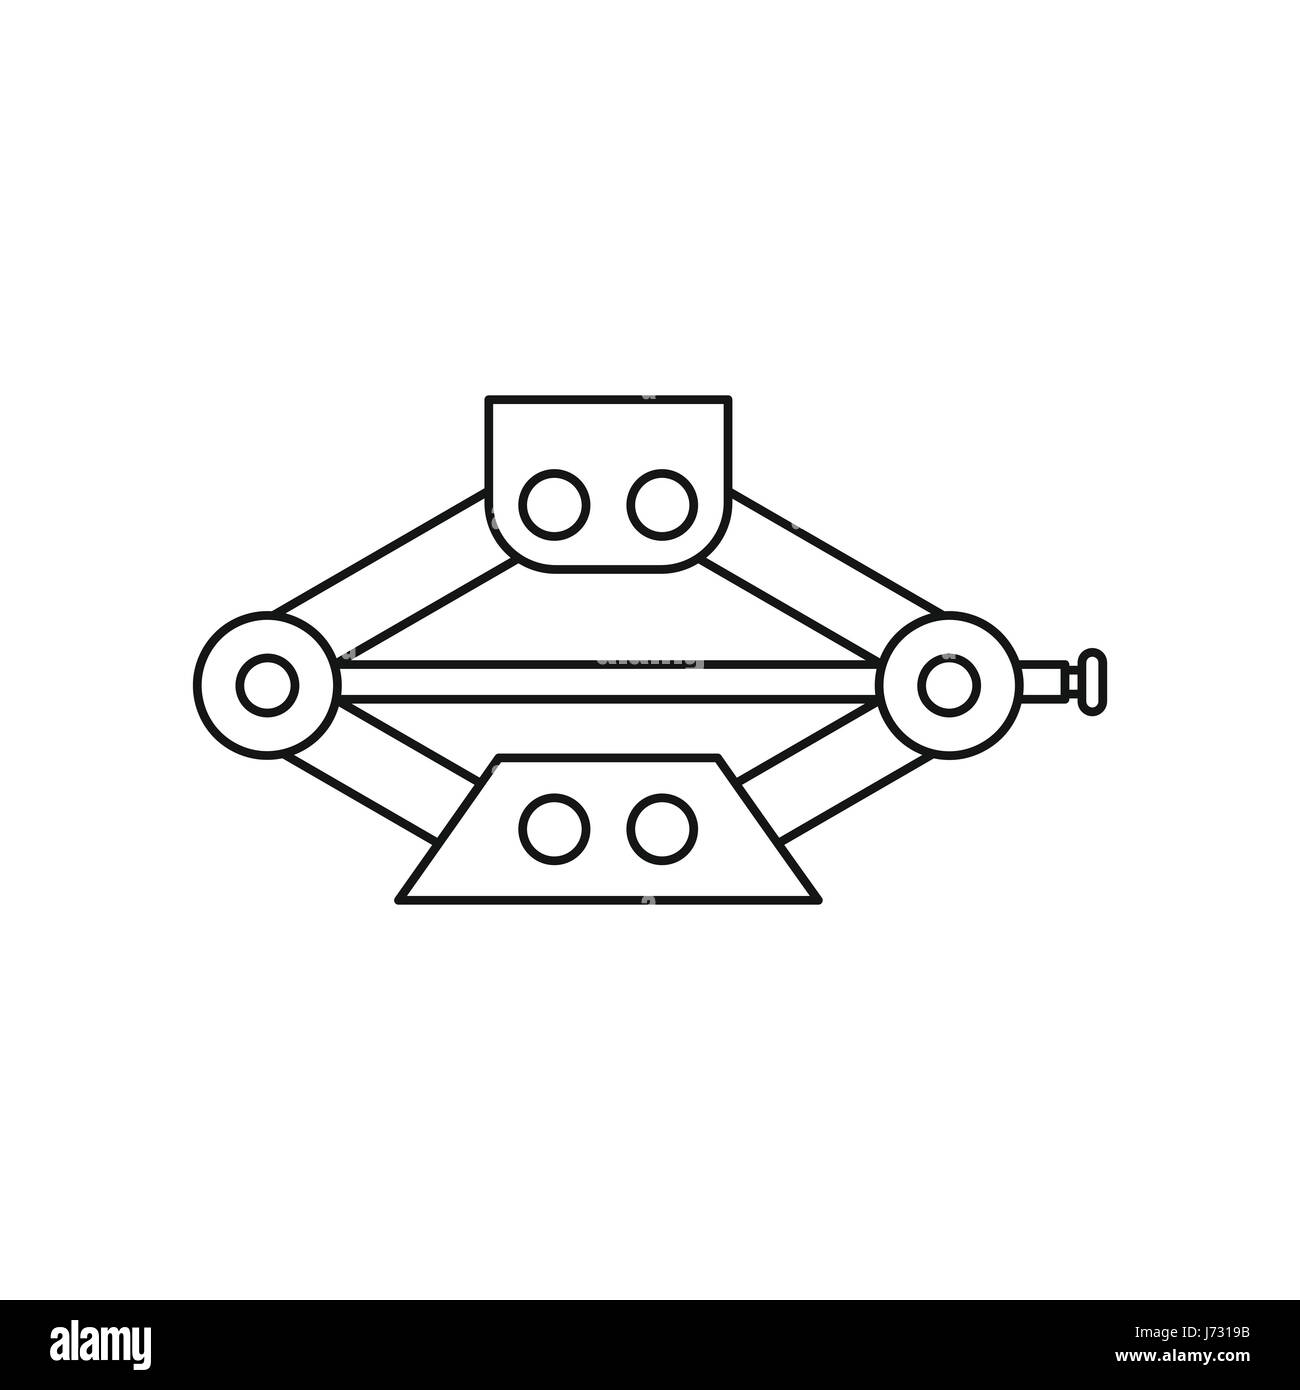 car jack service equipment icon outline style stock vector art